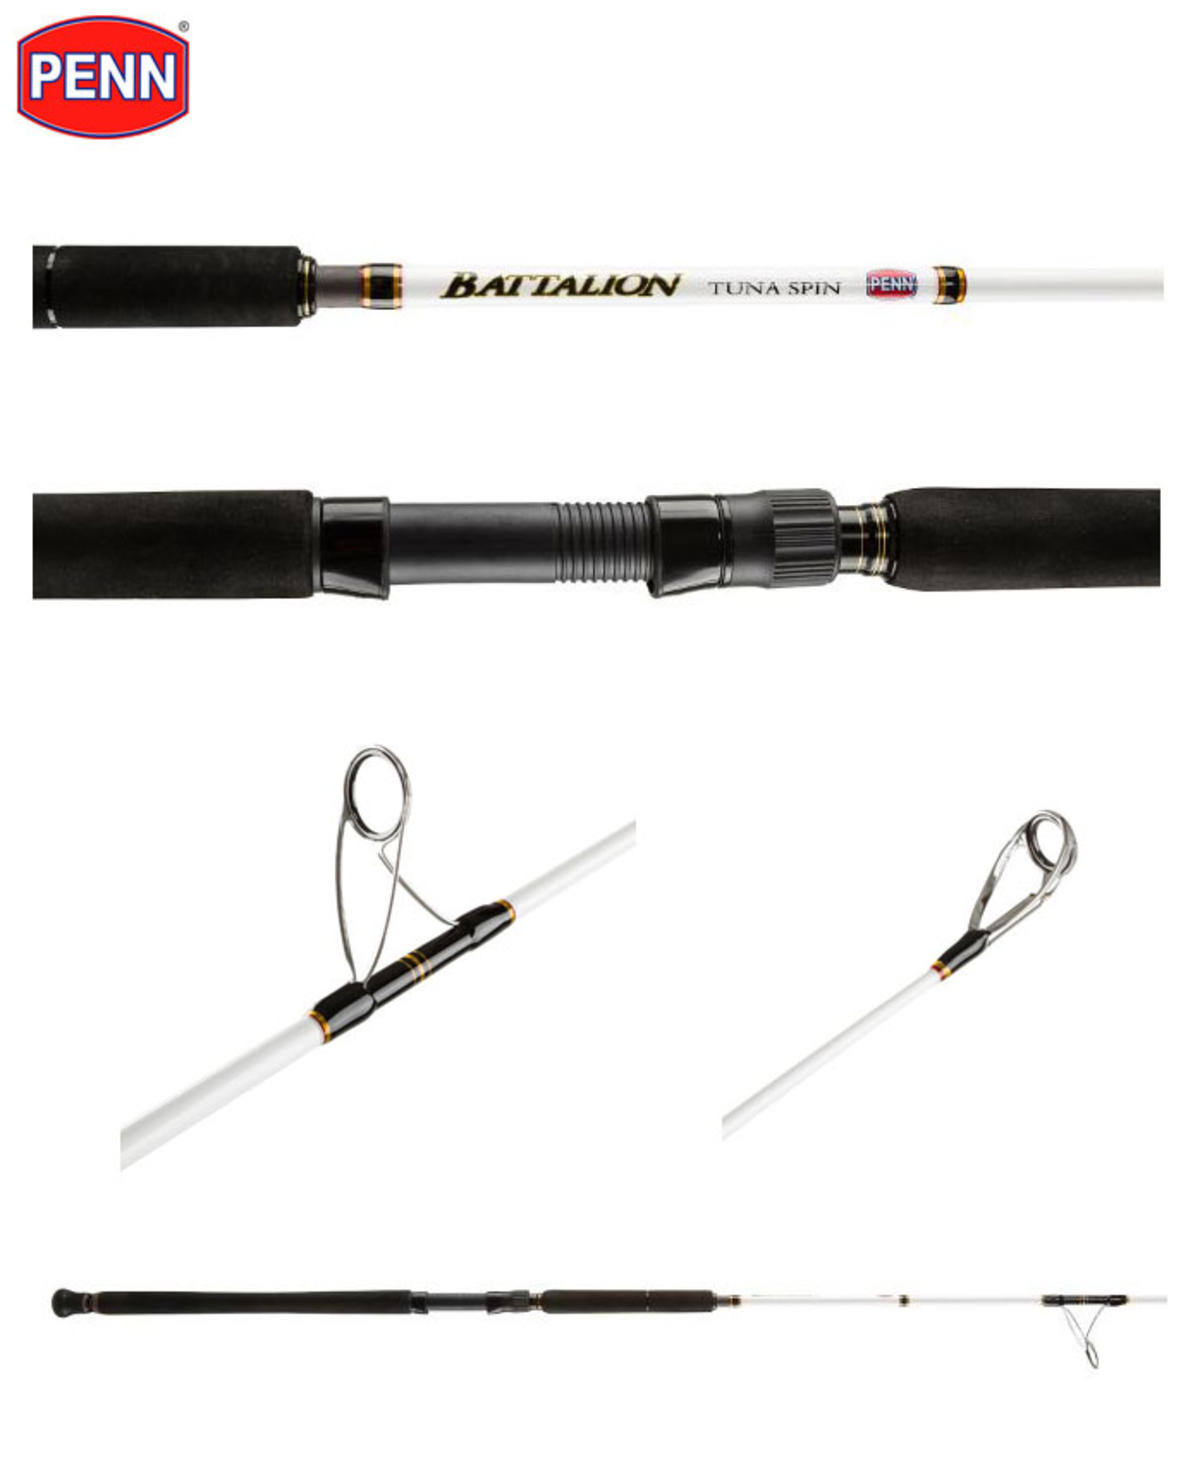 New Penn Battalion Tuna Spin Rod - 8'4' / 2.54m / 80-130g - 1436244